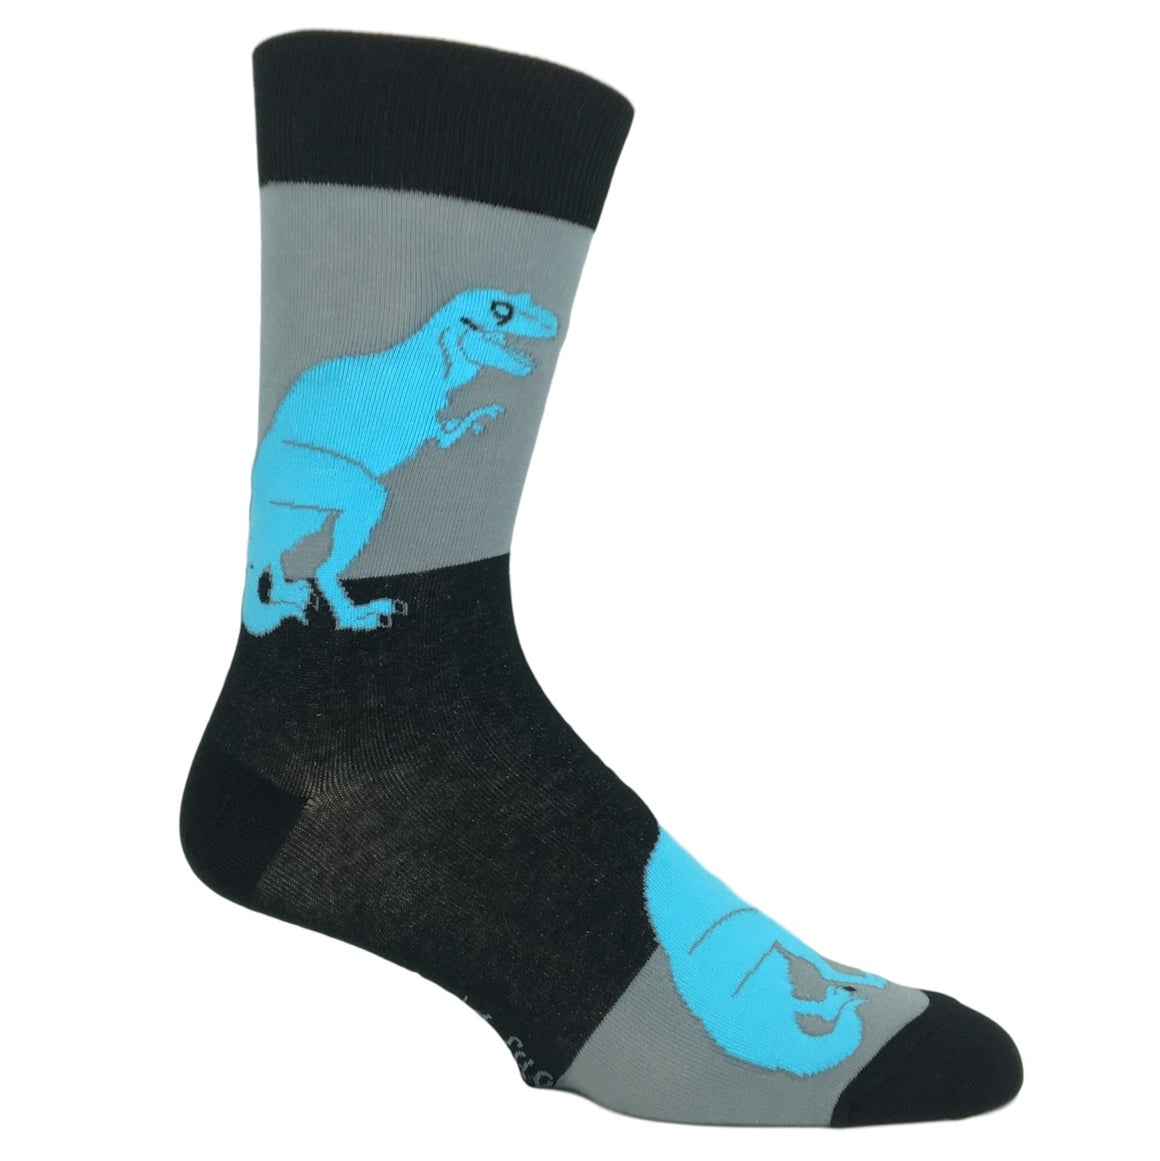 Black and Grey T-Rex Socks by Good Luck Sock - The Sock Spot